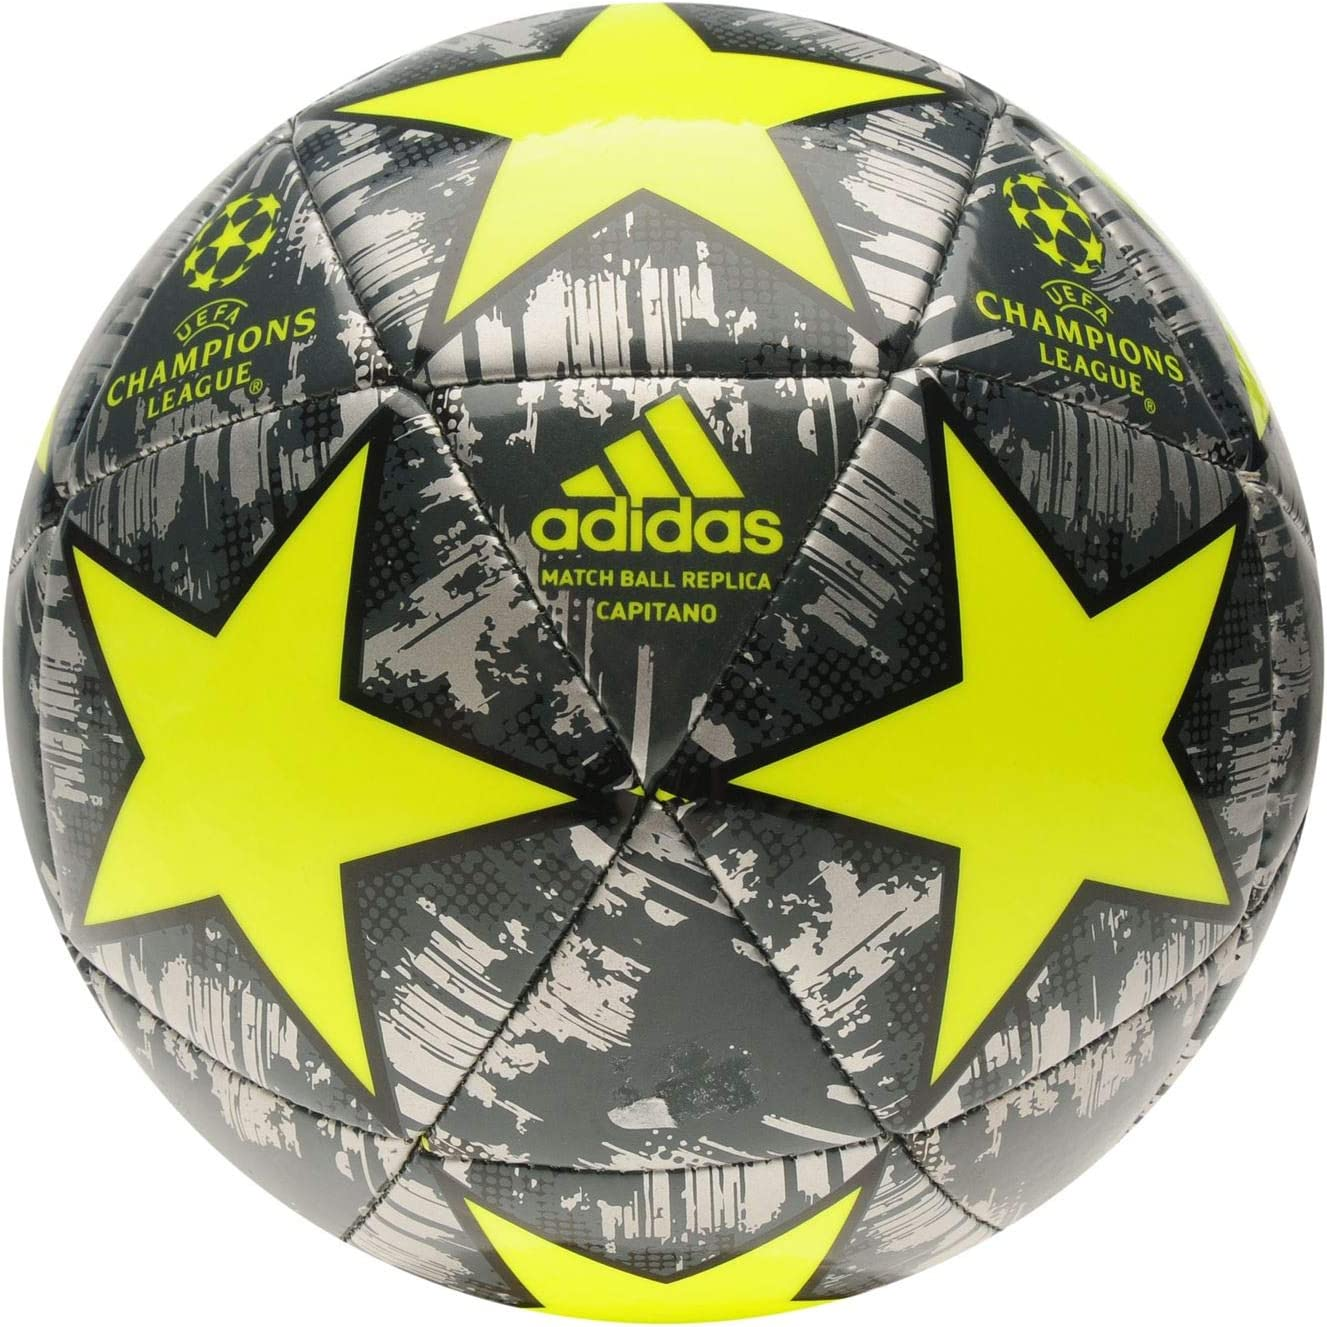 Inmunizar Unión lógica  adidas Champions League Football Professional Europe Tournament Ball Adults  Size 5: Amazon.co.uk: Sports & Outdoors